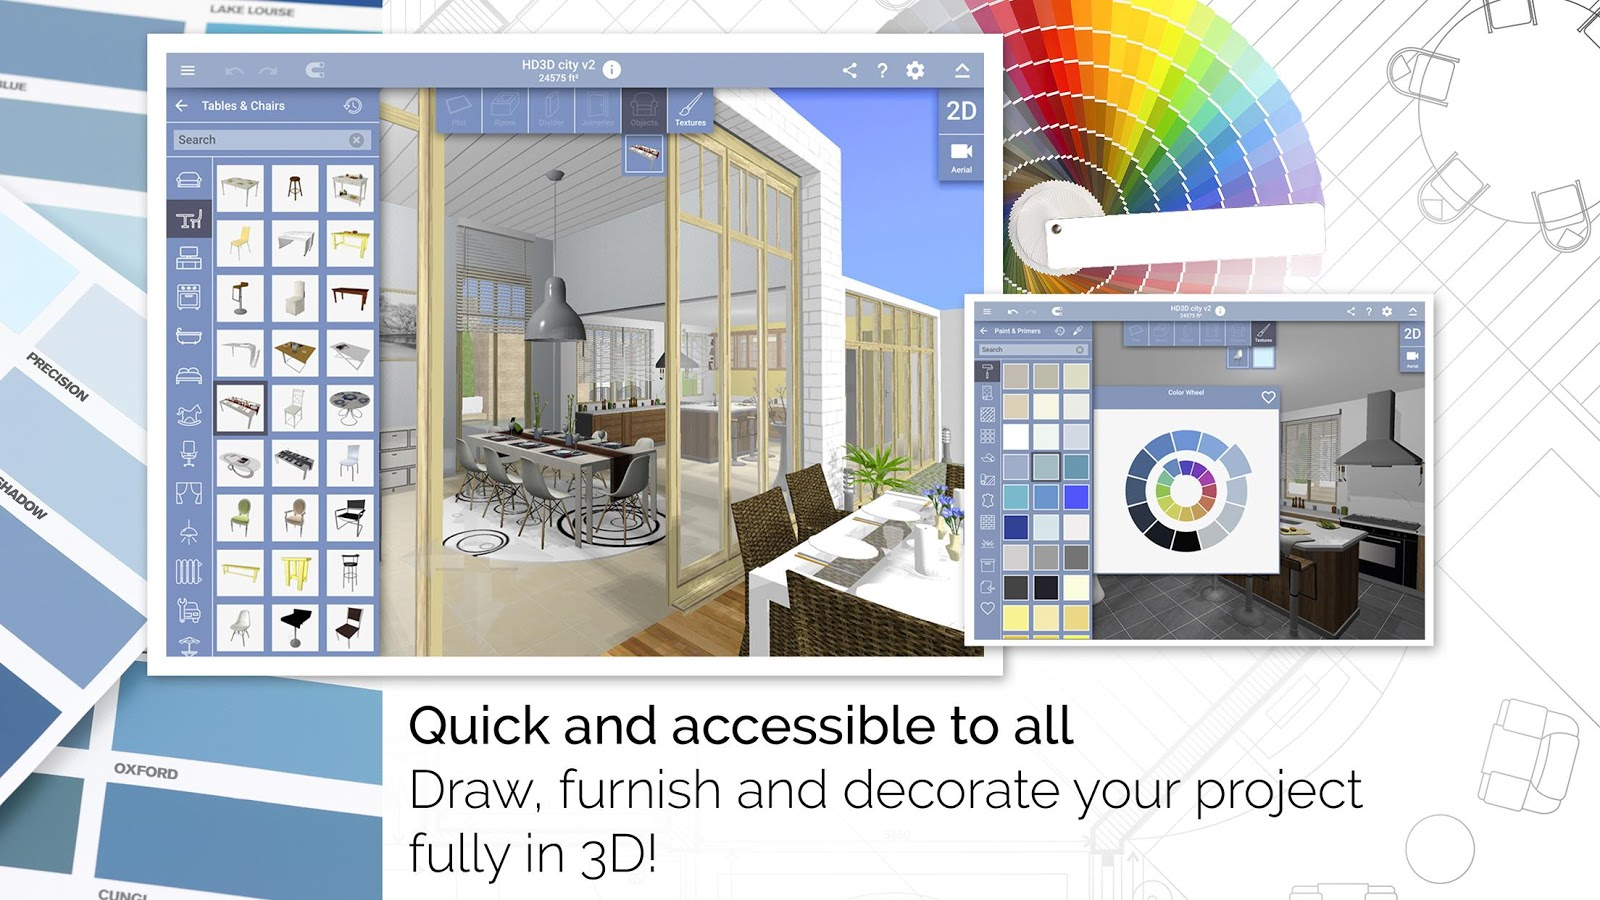 Home design 3d freemium android apps on google play for 3d interieur ontwerpen gratis